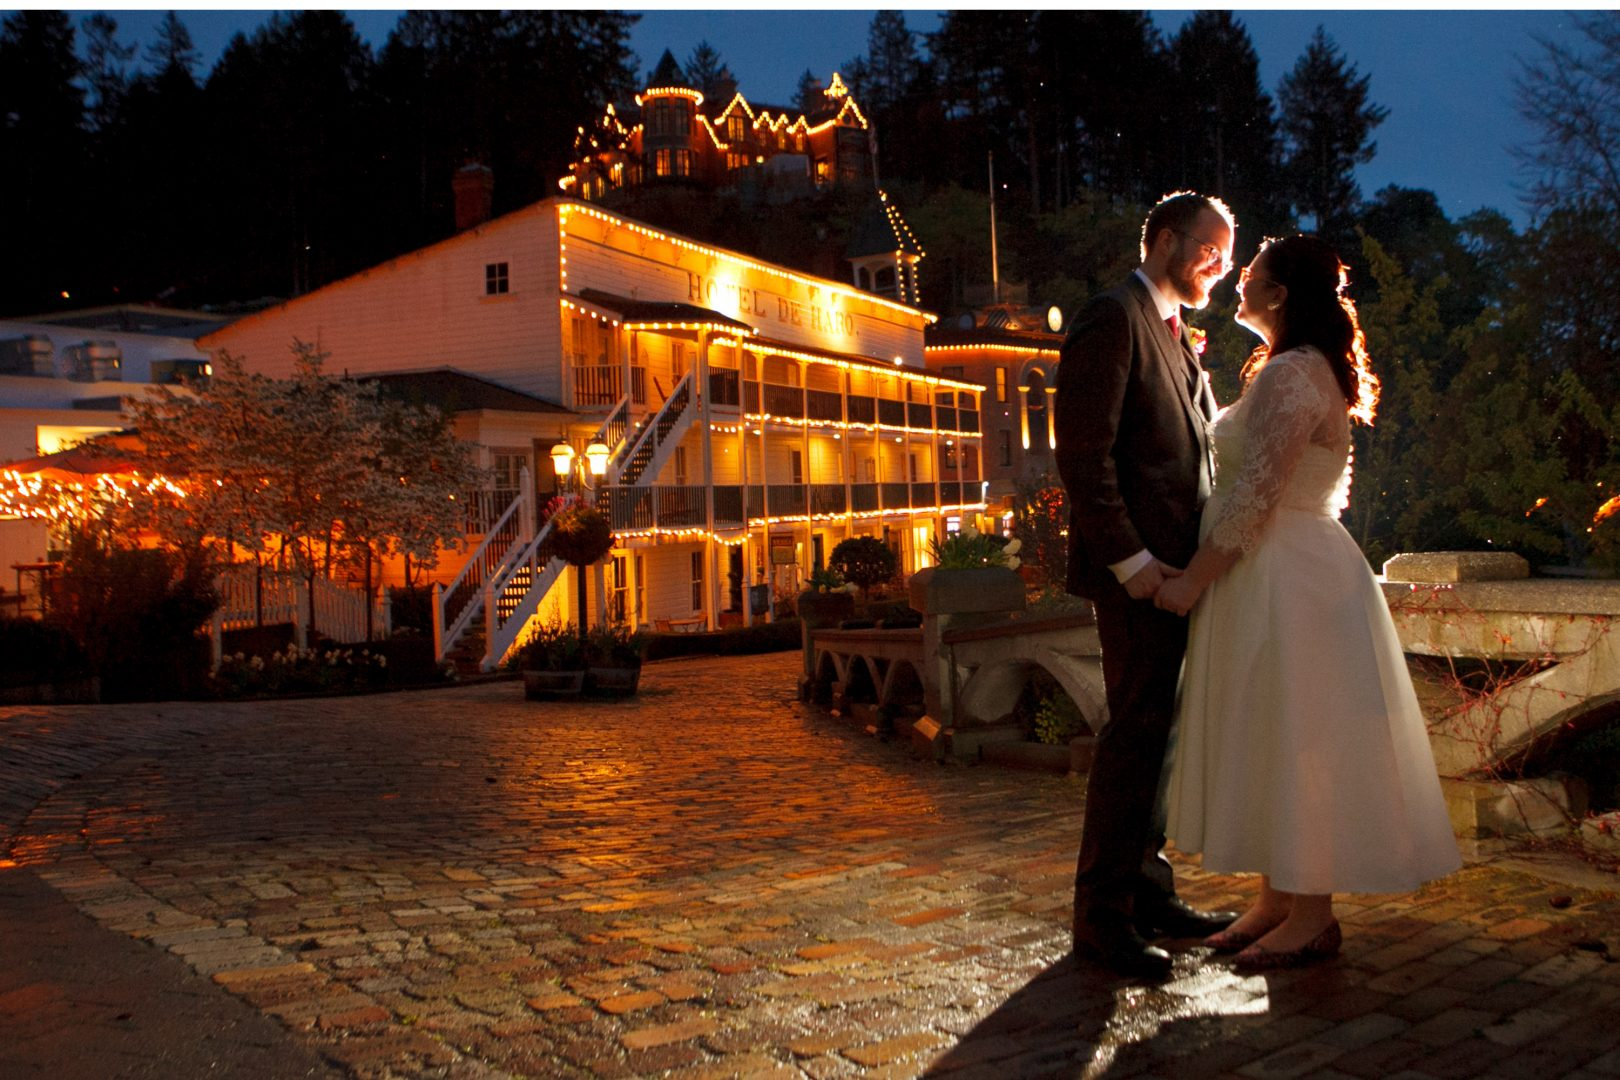 roche-harbor-wedding-photo-inspiration-pnw-island-wedding-venue-night-Portrait